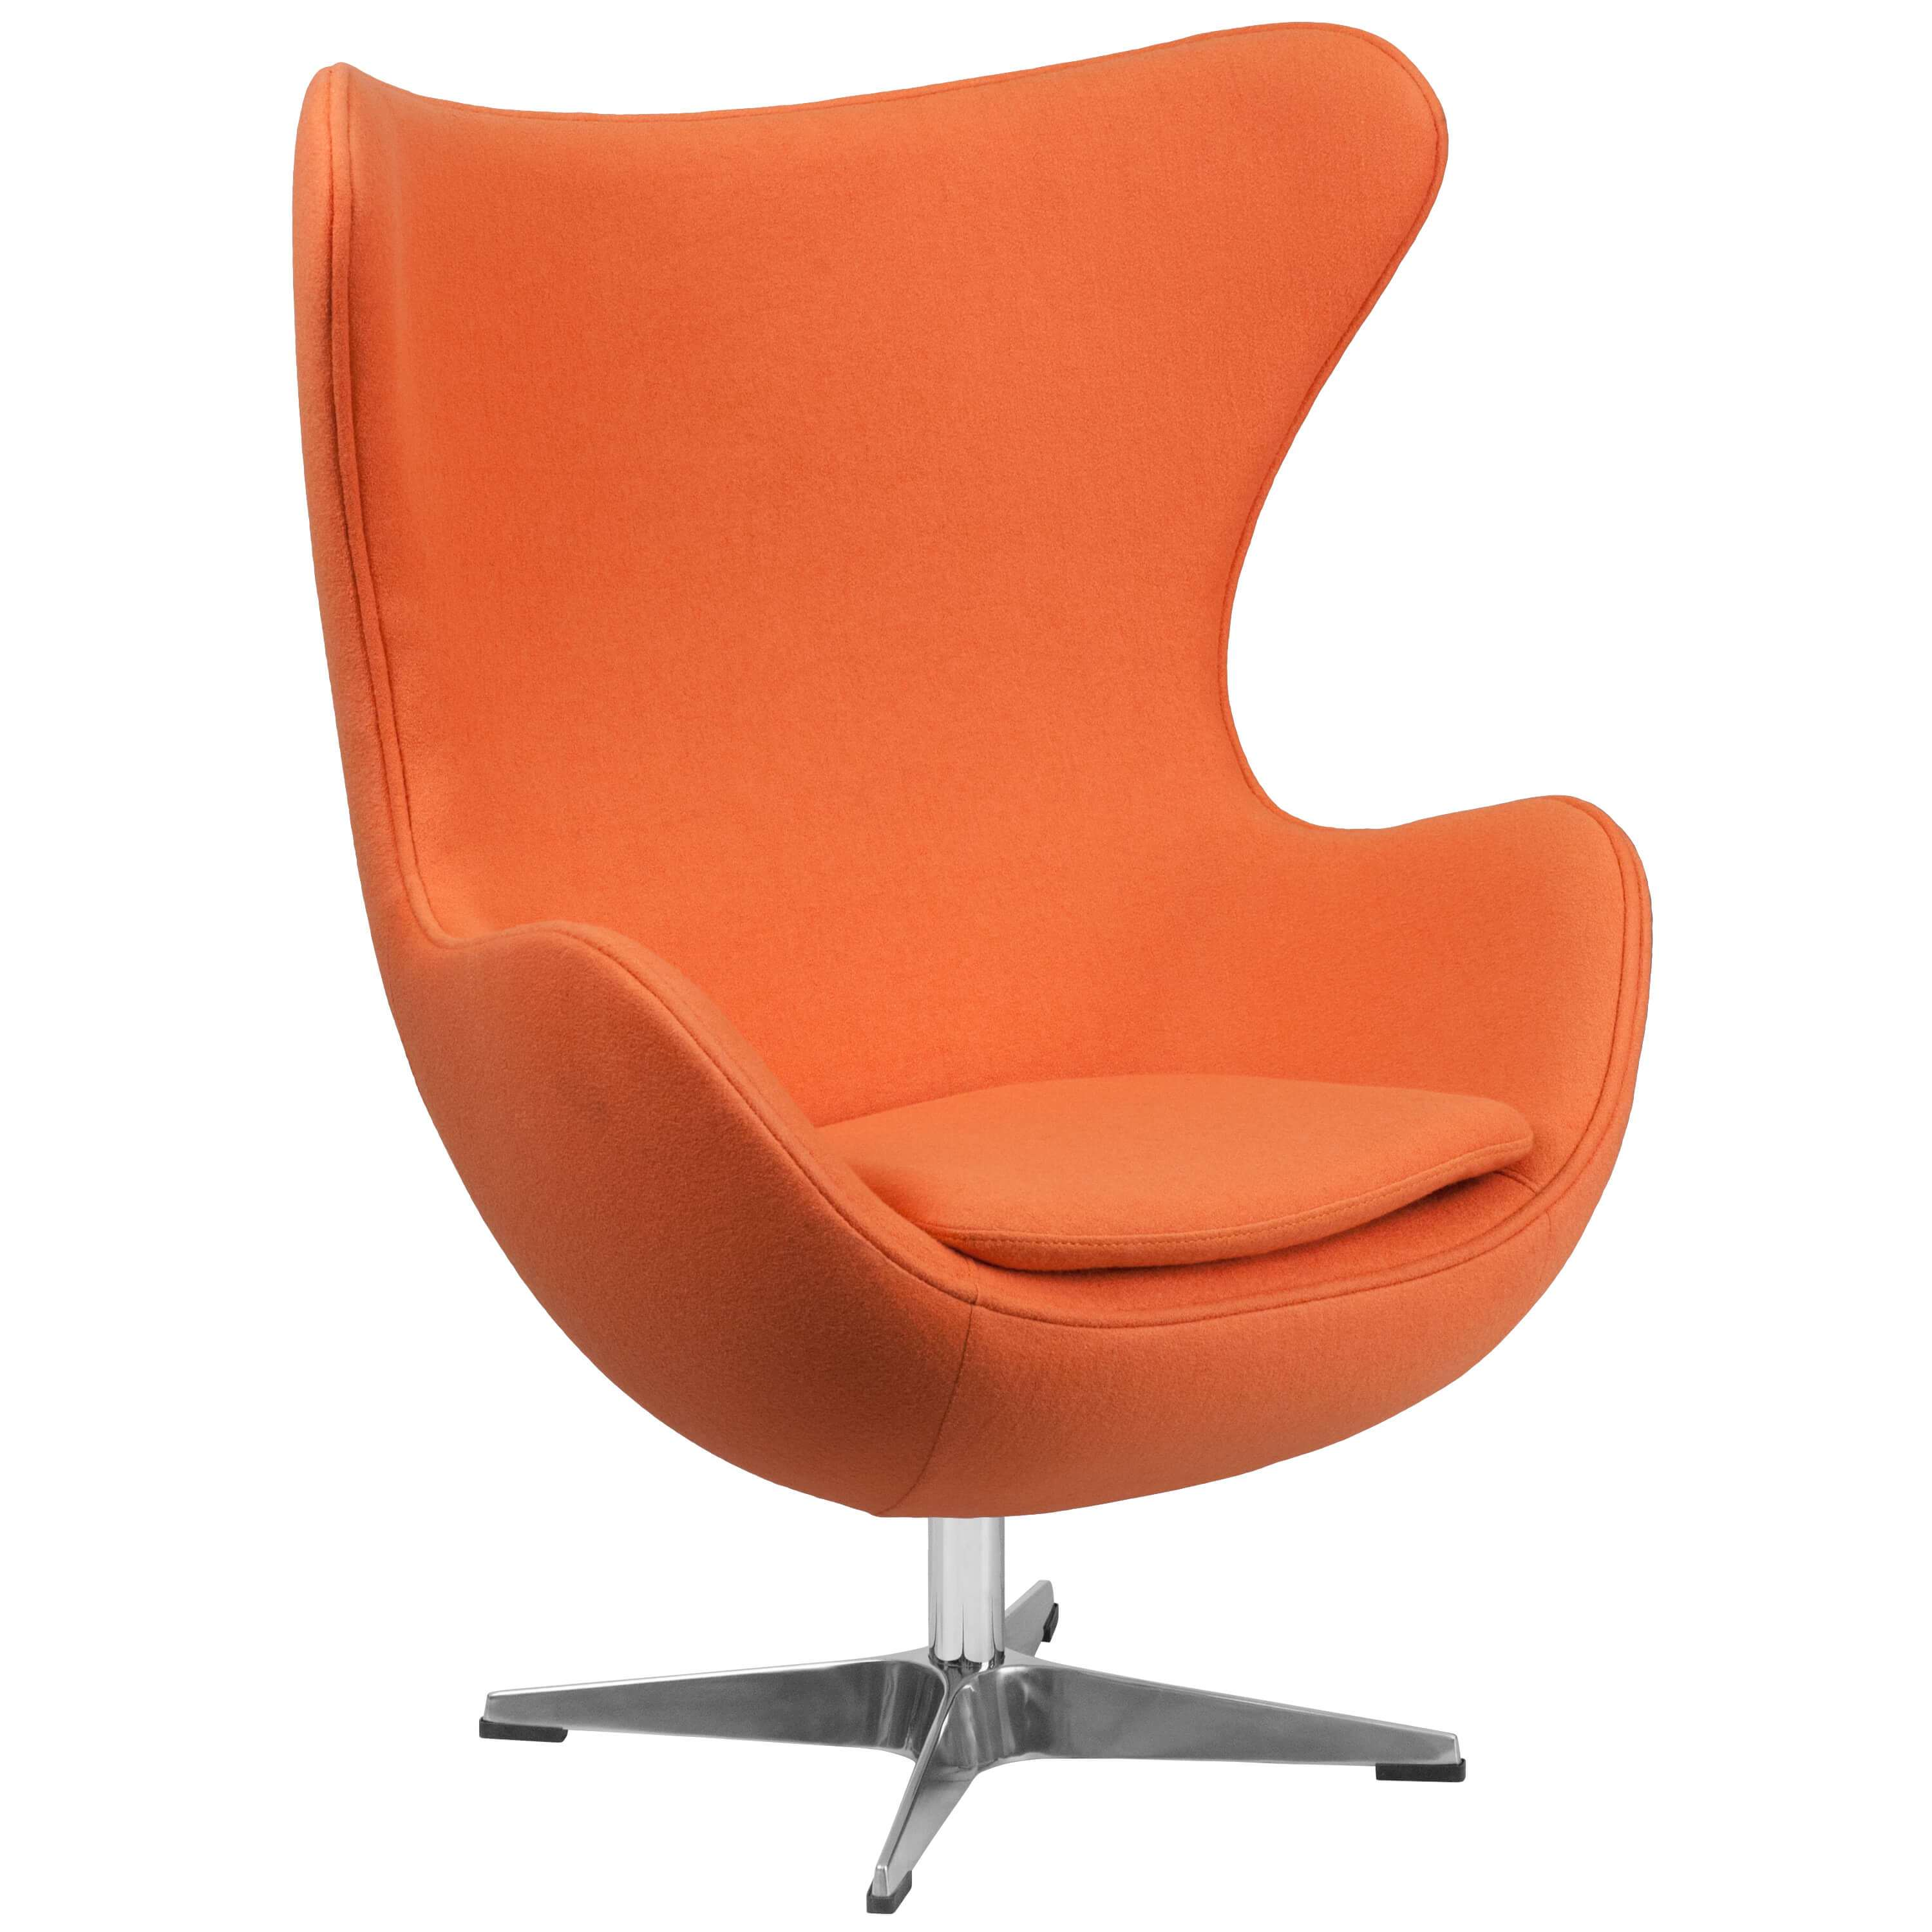 Office lounge chairs CUB ZB 17 GG ALF